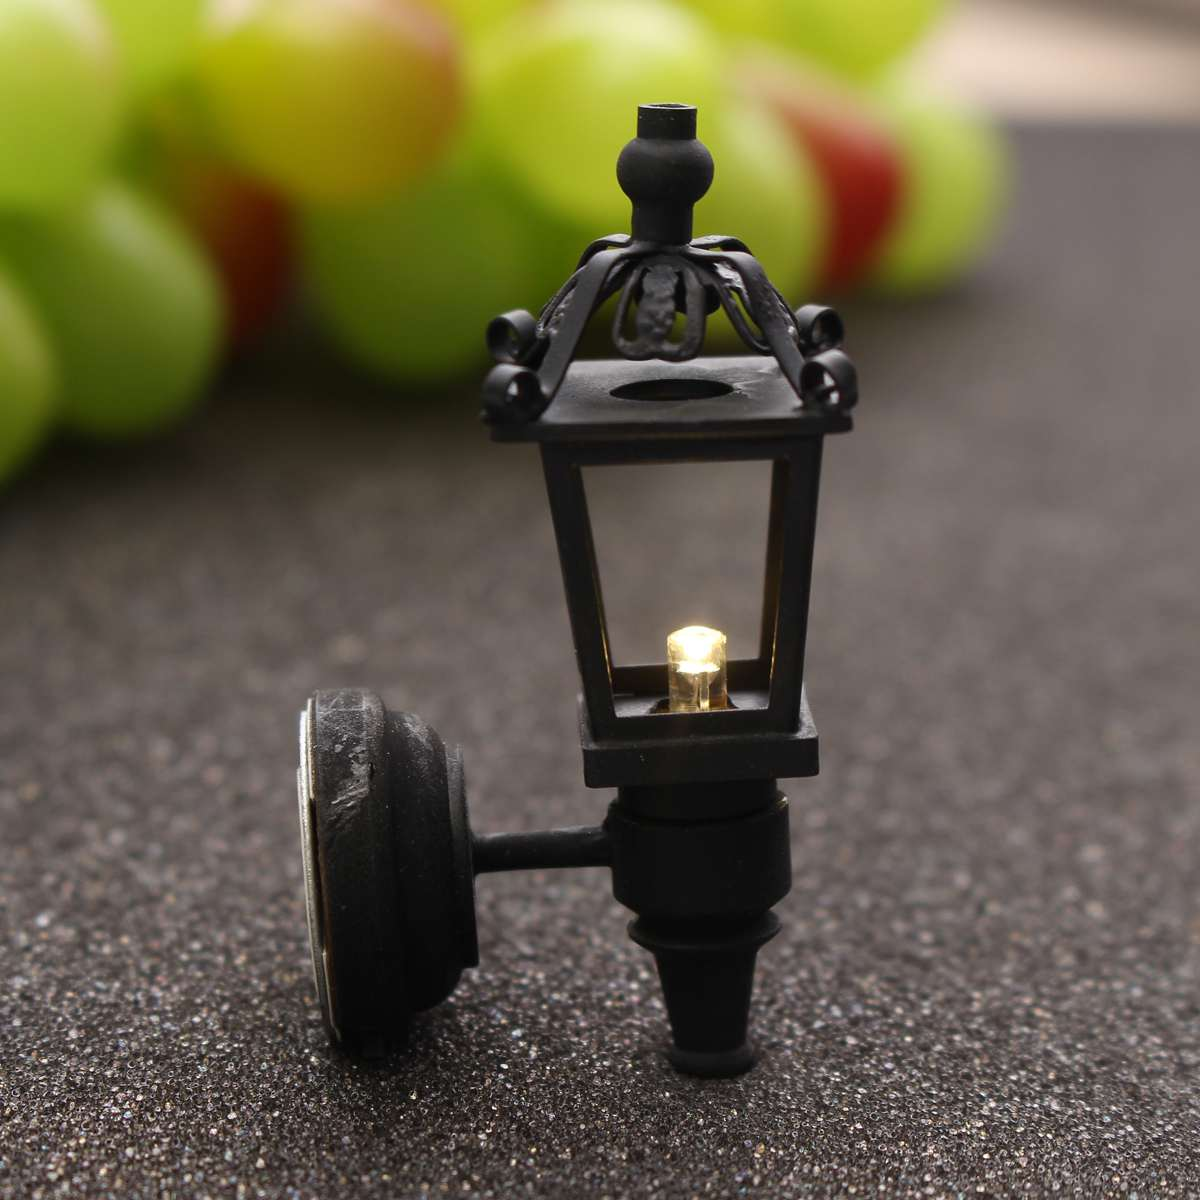 Miniatura Streetlight LED Electronic Products Landscape For Doll House Accessories Simulation Street